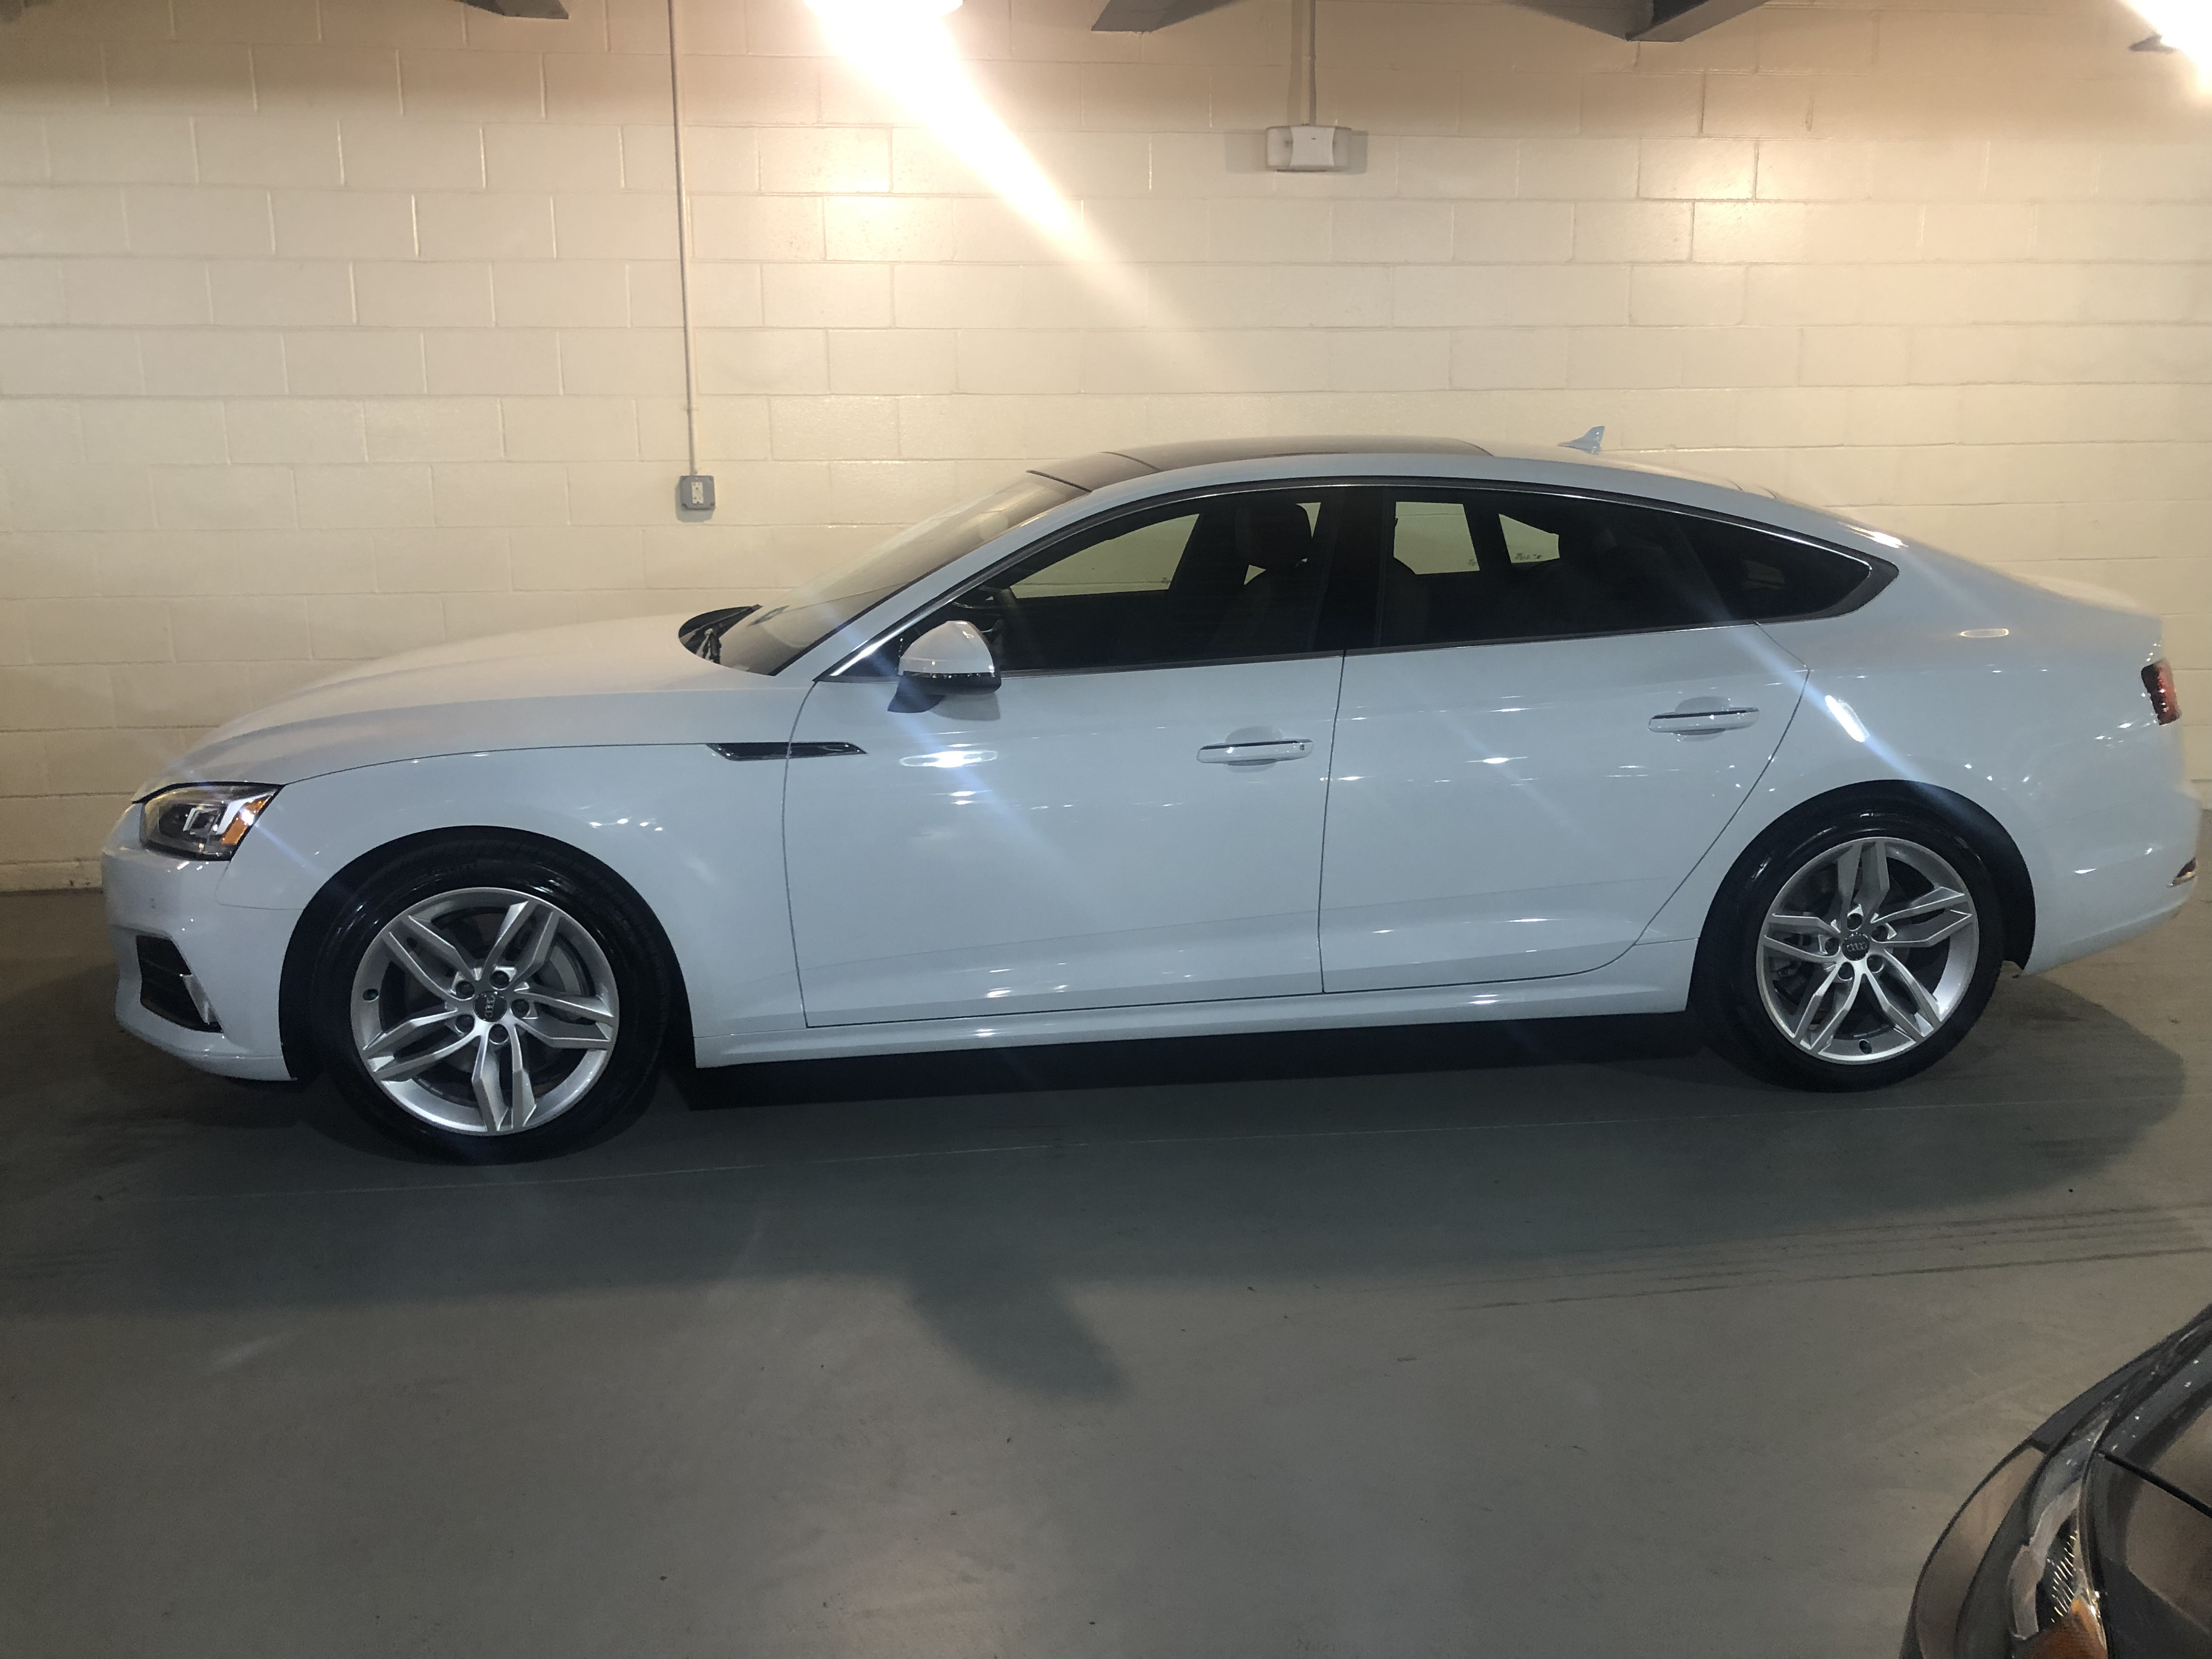 2019 Audi A5 Lease Deals And Prices Car Forums At Edmunds Com